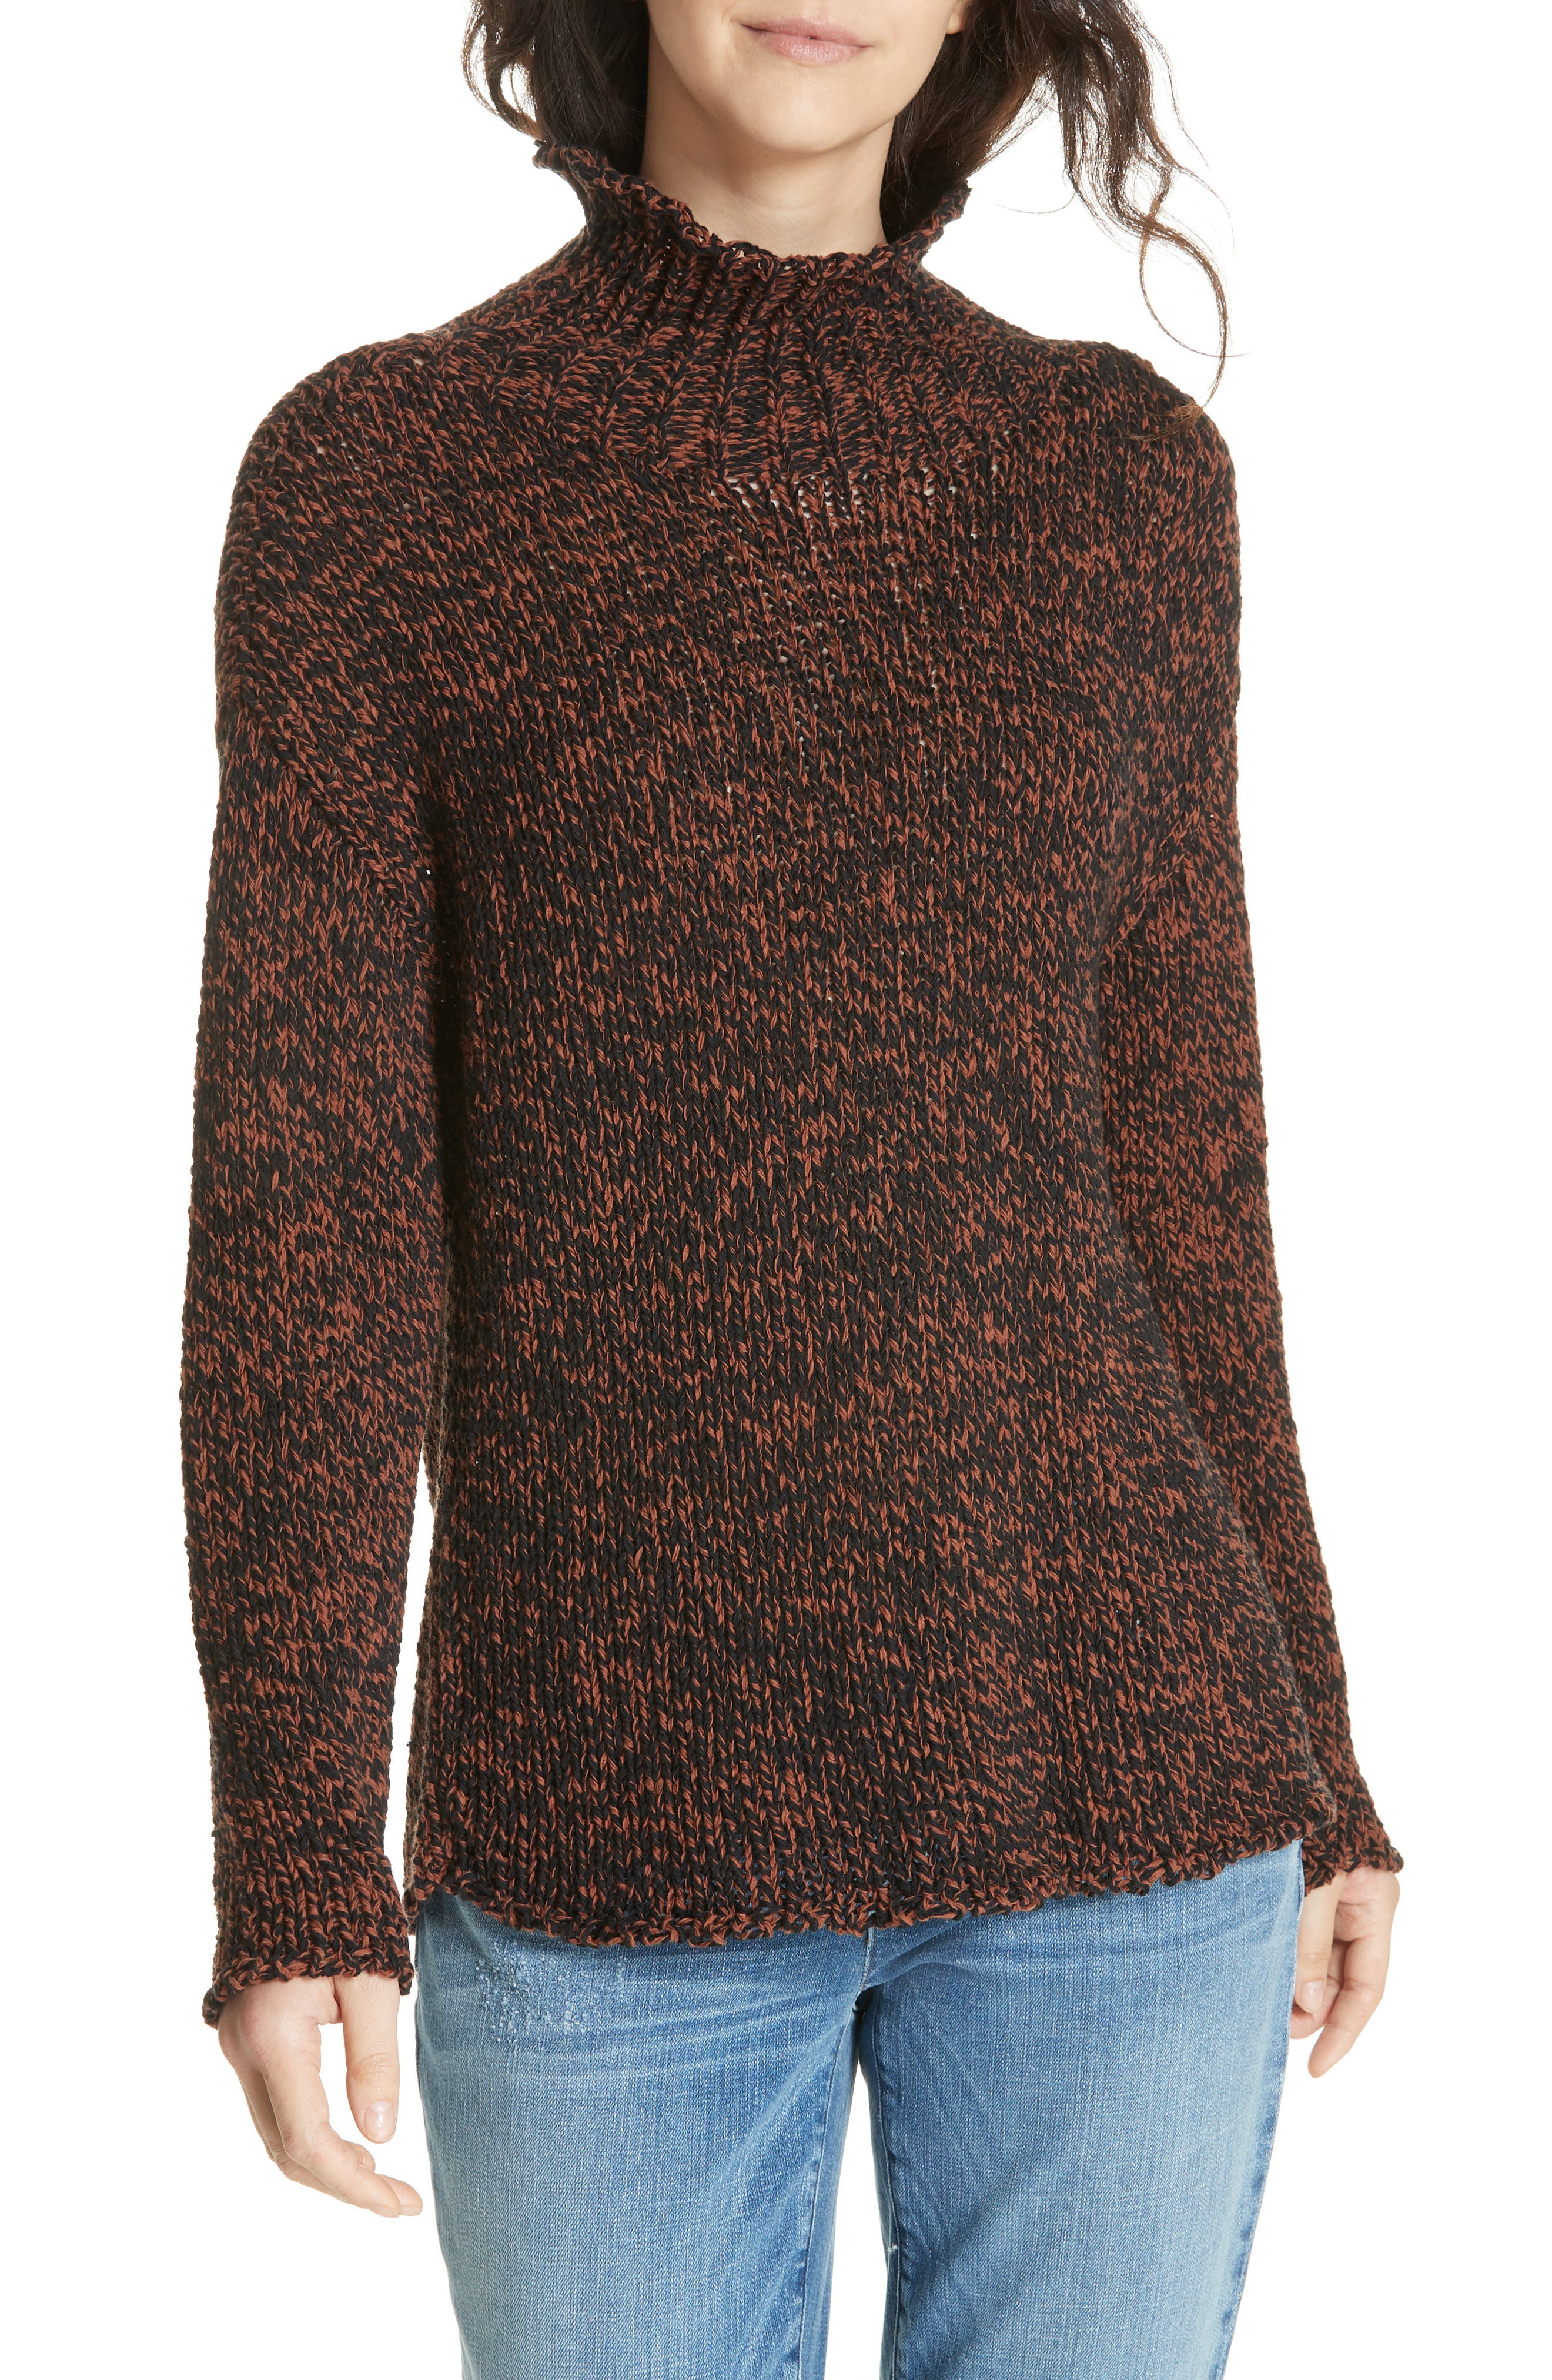 Marled Organic Cotton Blend Sweater,                             Main thumbnail 1, color,                             NUTMEG